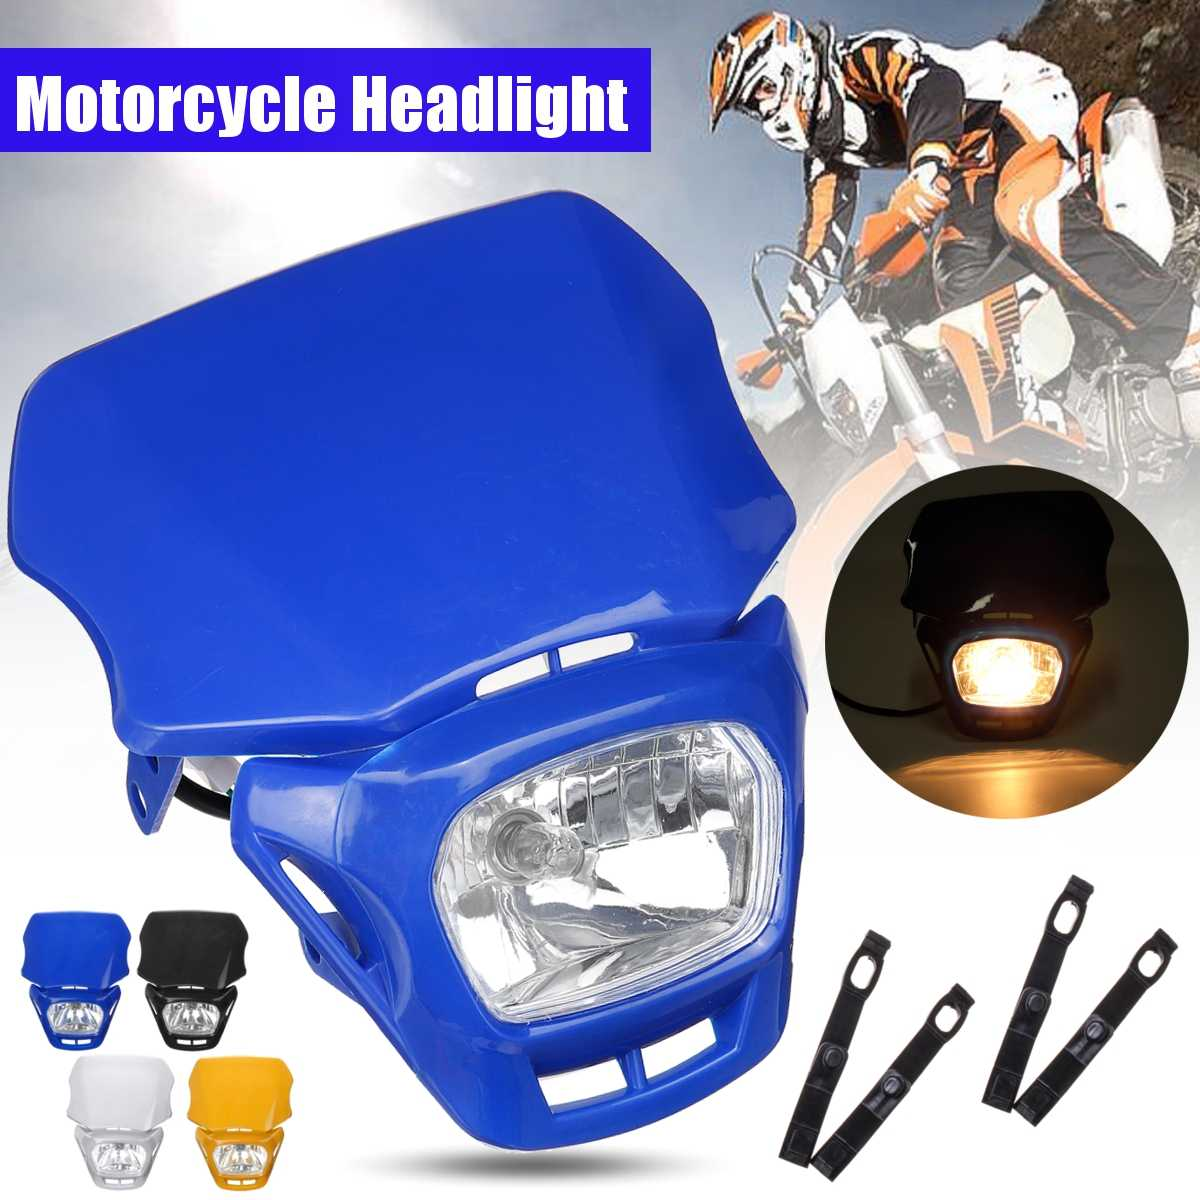 <font><b>Universal</b></font> Motorcycle <font><b>Dirt</b></font> <font><b>Bike</b></font> <font><b>Headlight</b></font> Fairing Dual Sport For KTM EXC EXCF XCF XCW SX For Street Fighter Enduro <font><b>HeadLight</b></font> lamp image